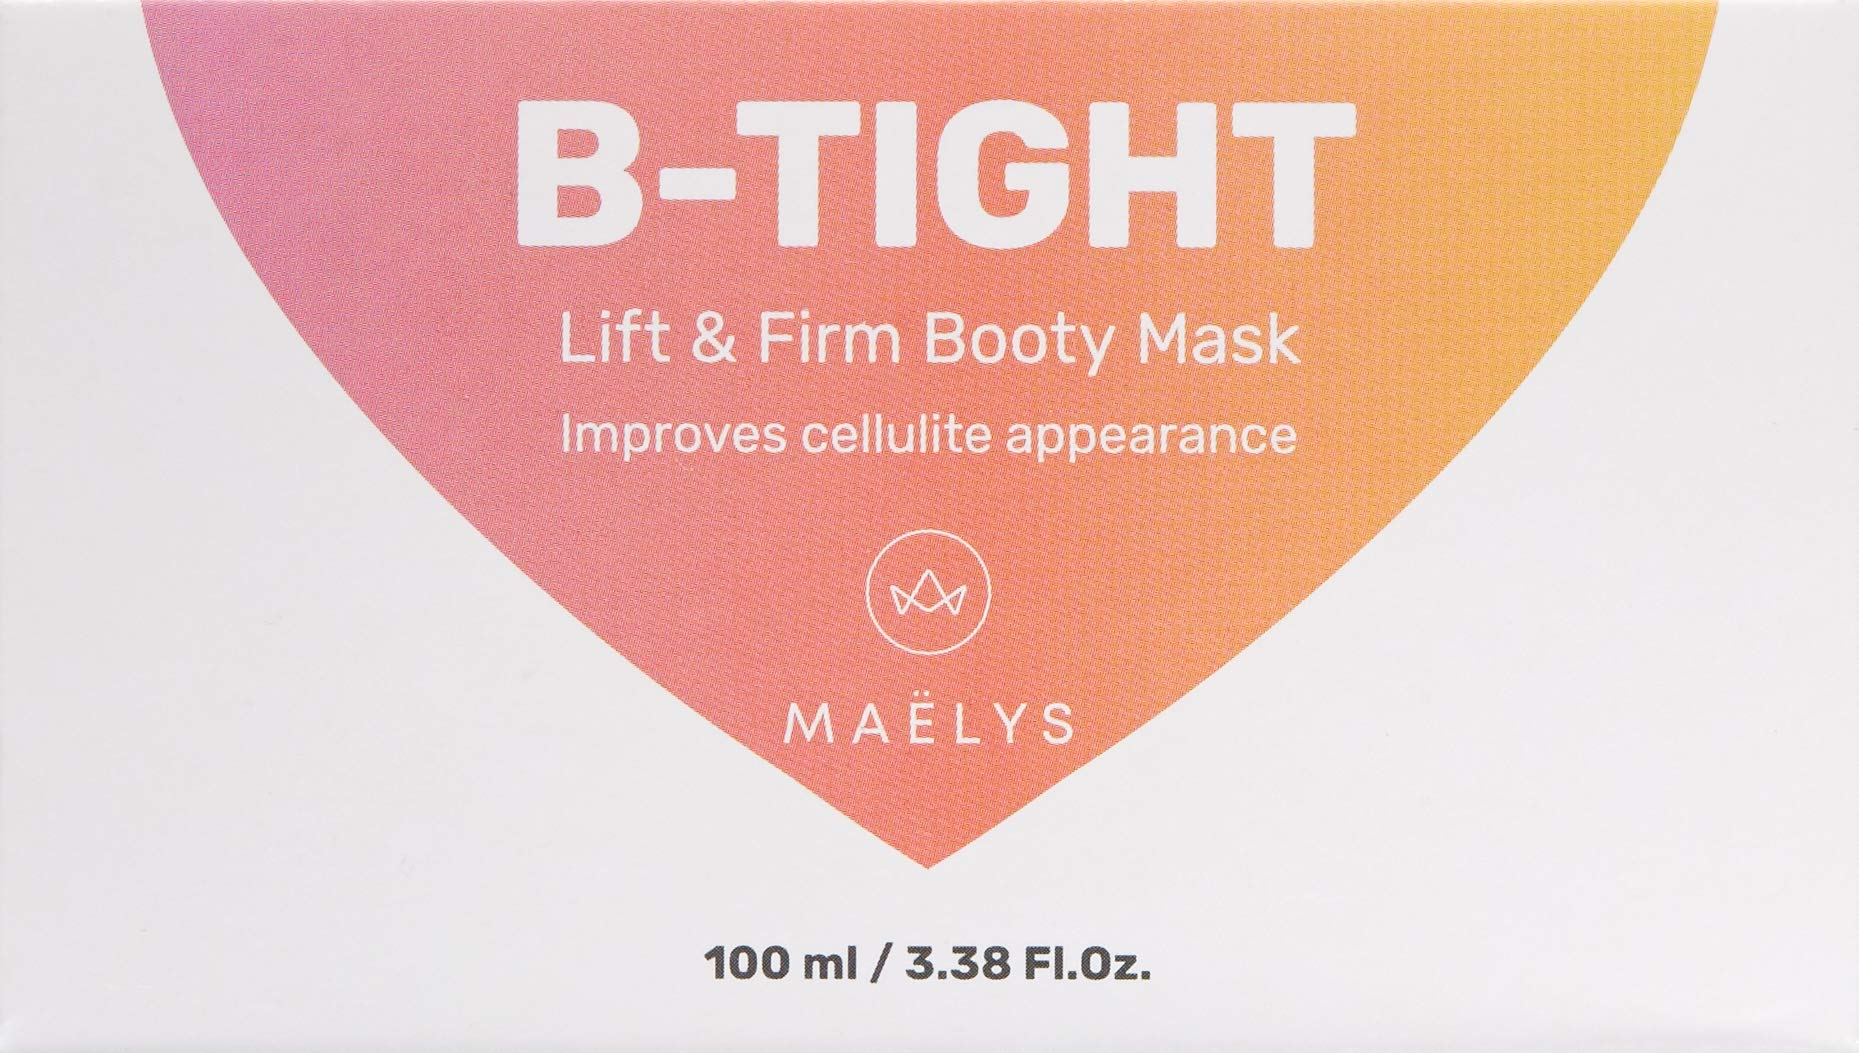 MAELYS B-TIGHT Lift & Firm Booty Mask